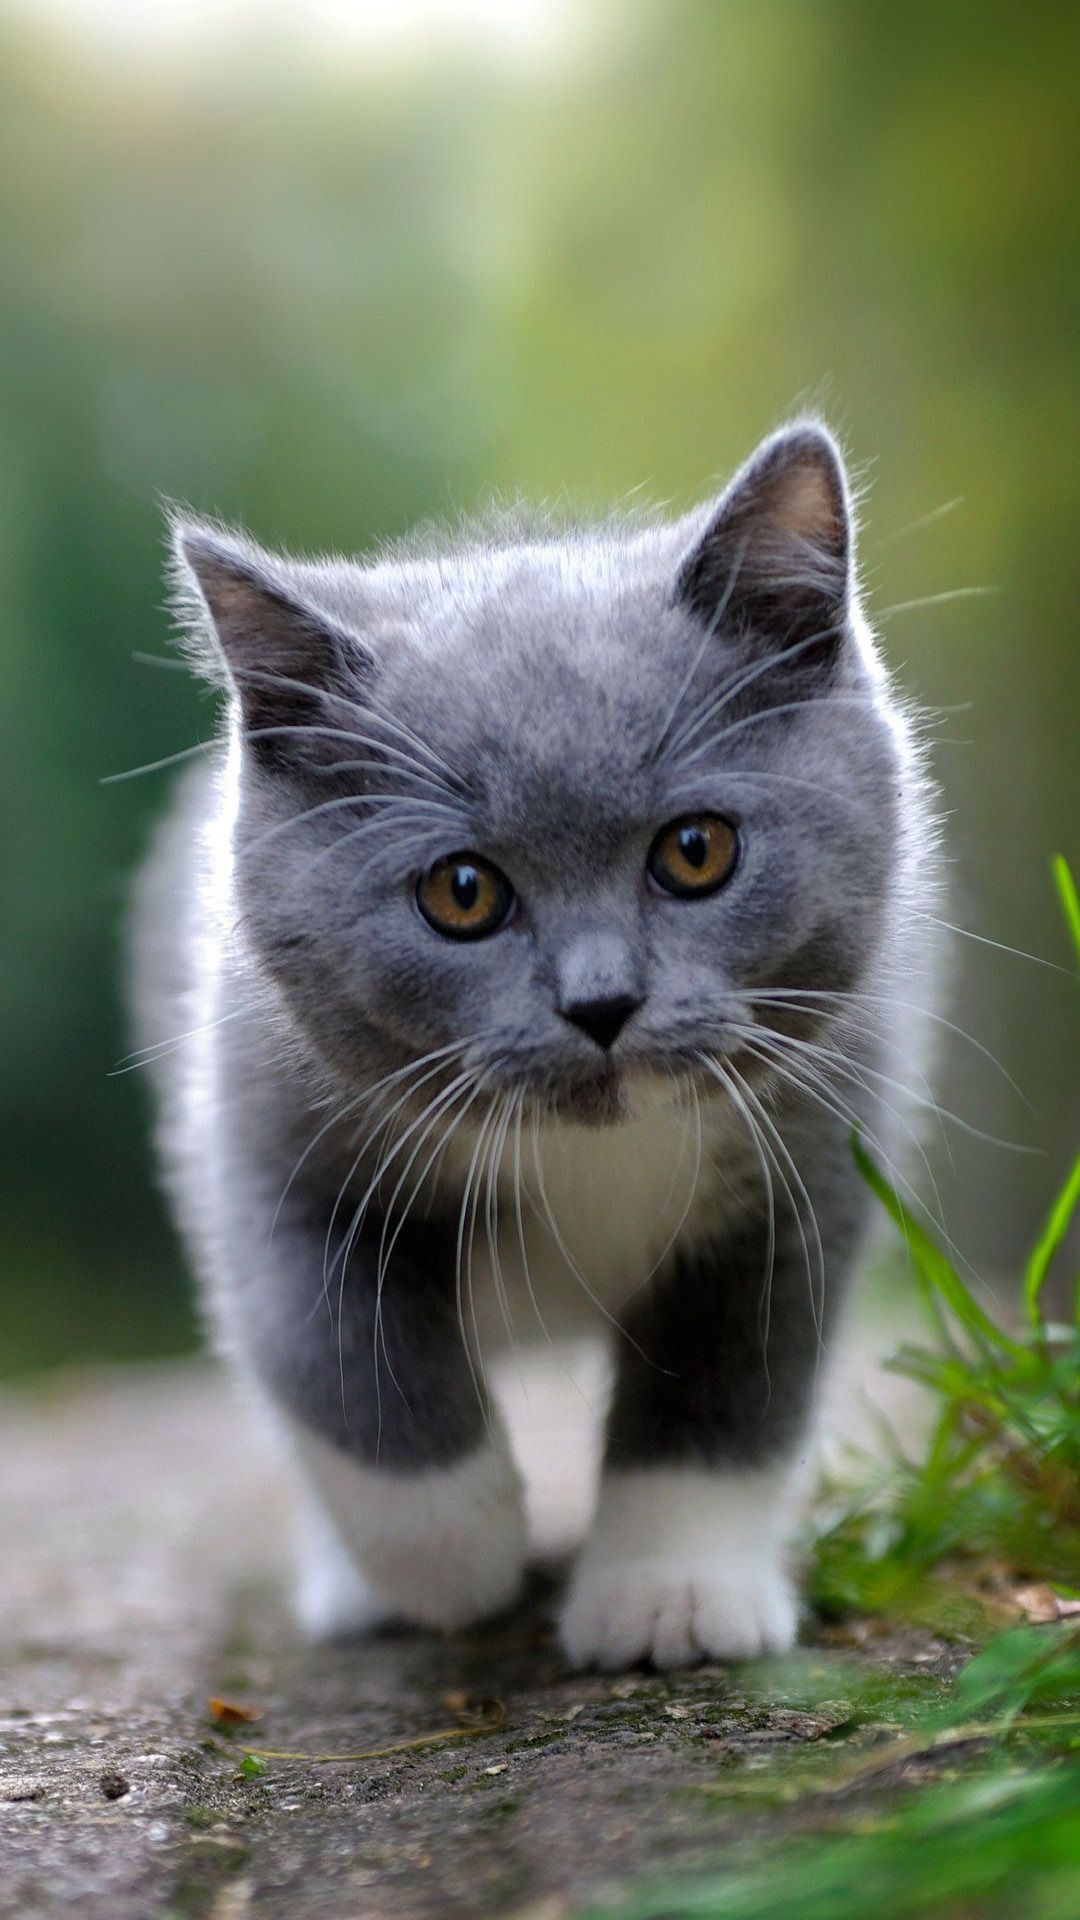 Cute Grey Kitten Cute Animals Iphone Wallpapers Mobile9 Animals Cat Cute Cats Kittens Cutest Beautiful Cats